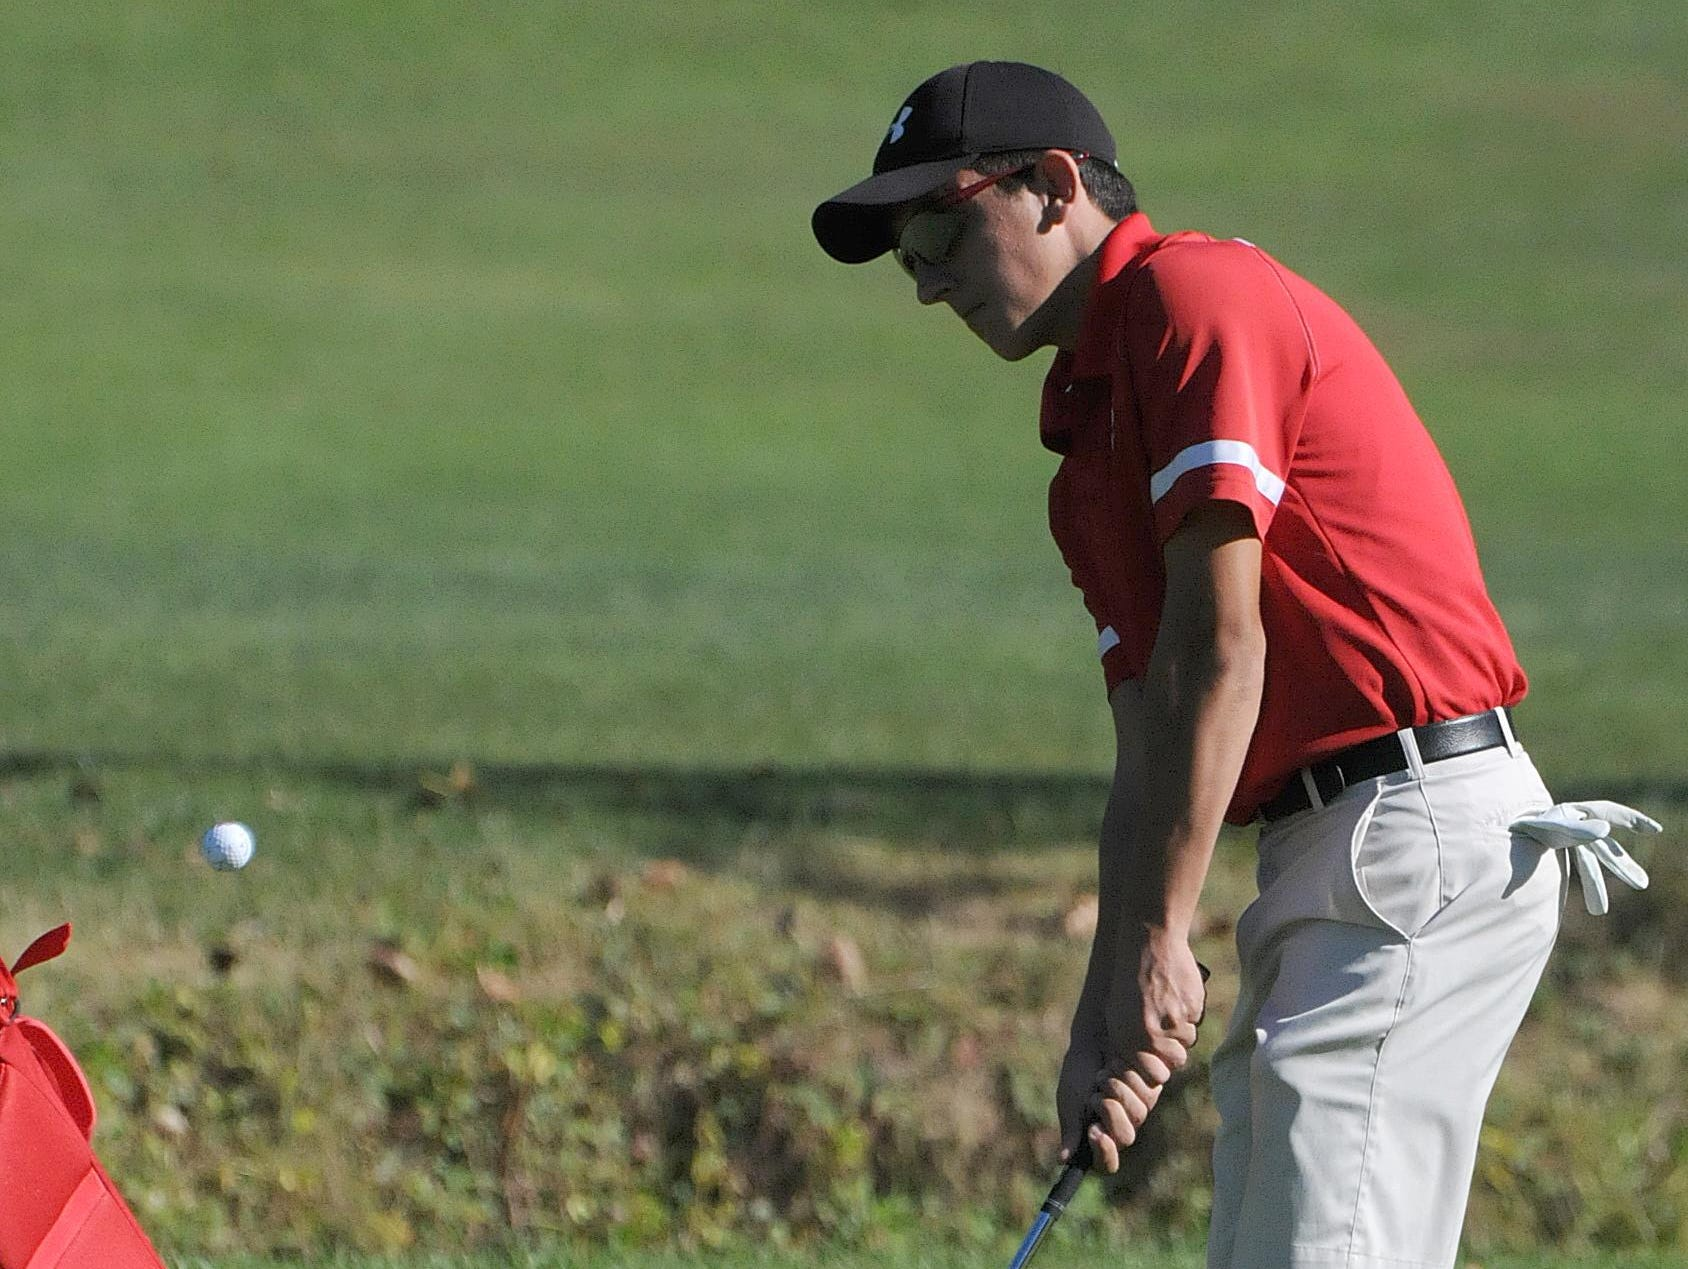 Dalton Sheaffer of Buckeye Central competes Tuesday in the Northern 10 Conference Golf Championship at Valley View Golf Course in Crestline.